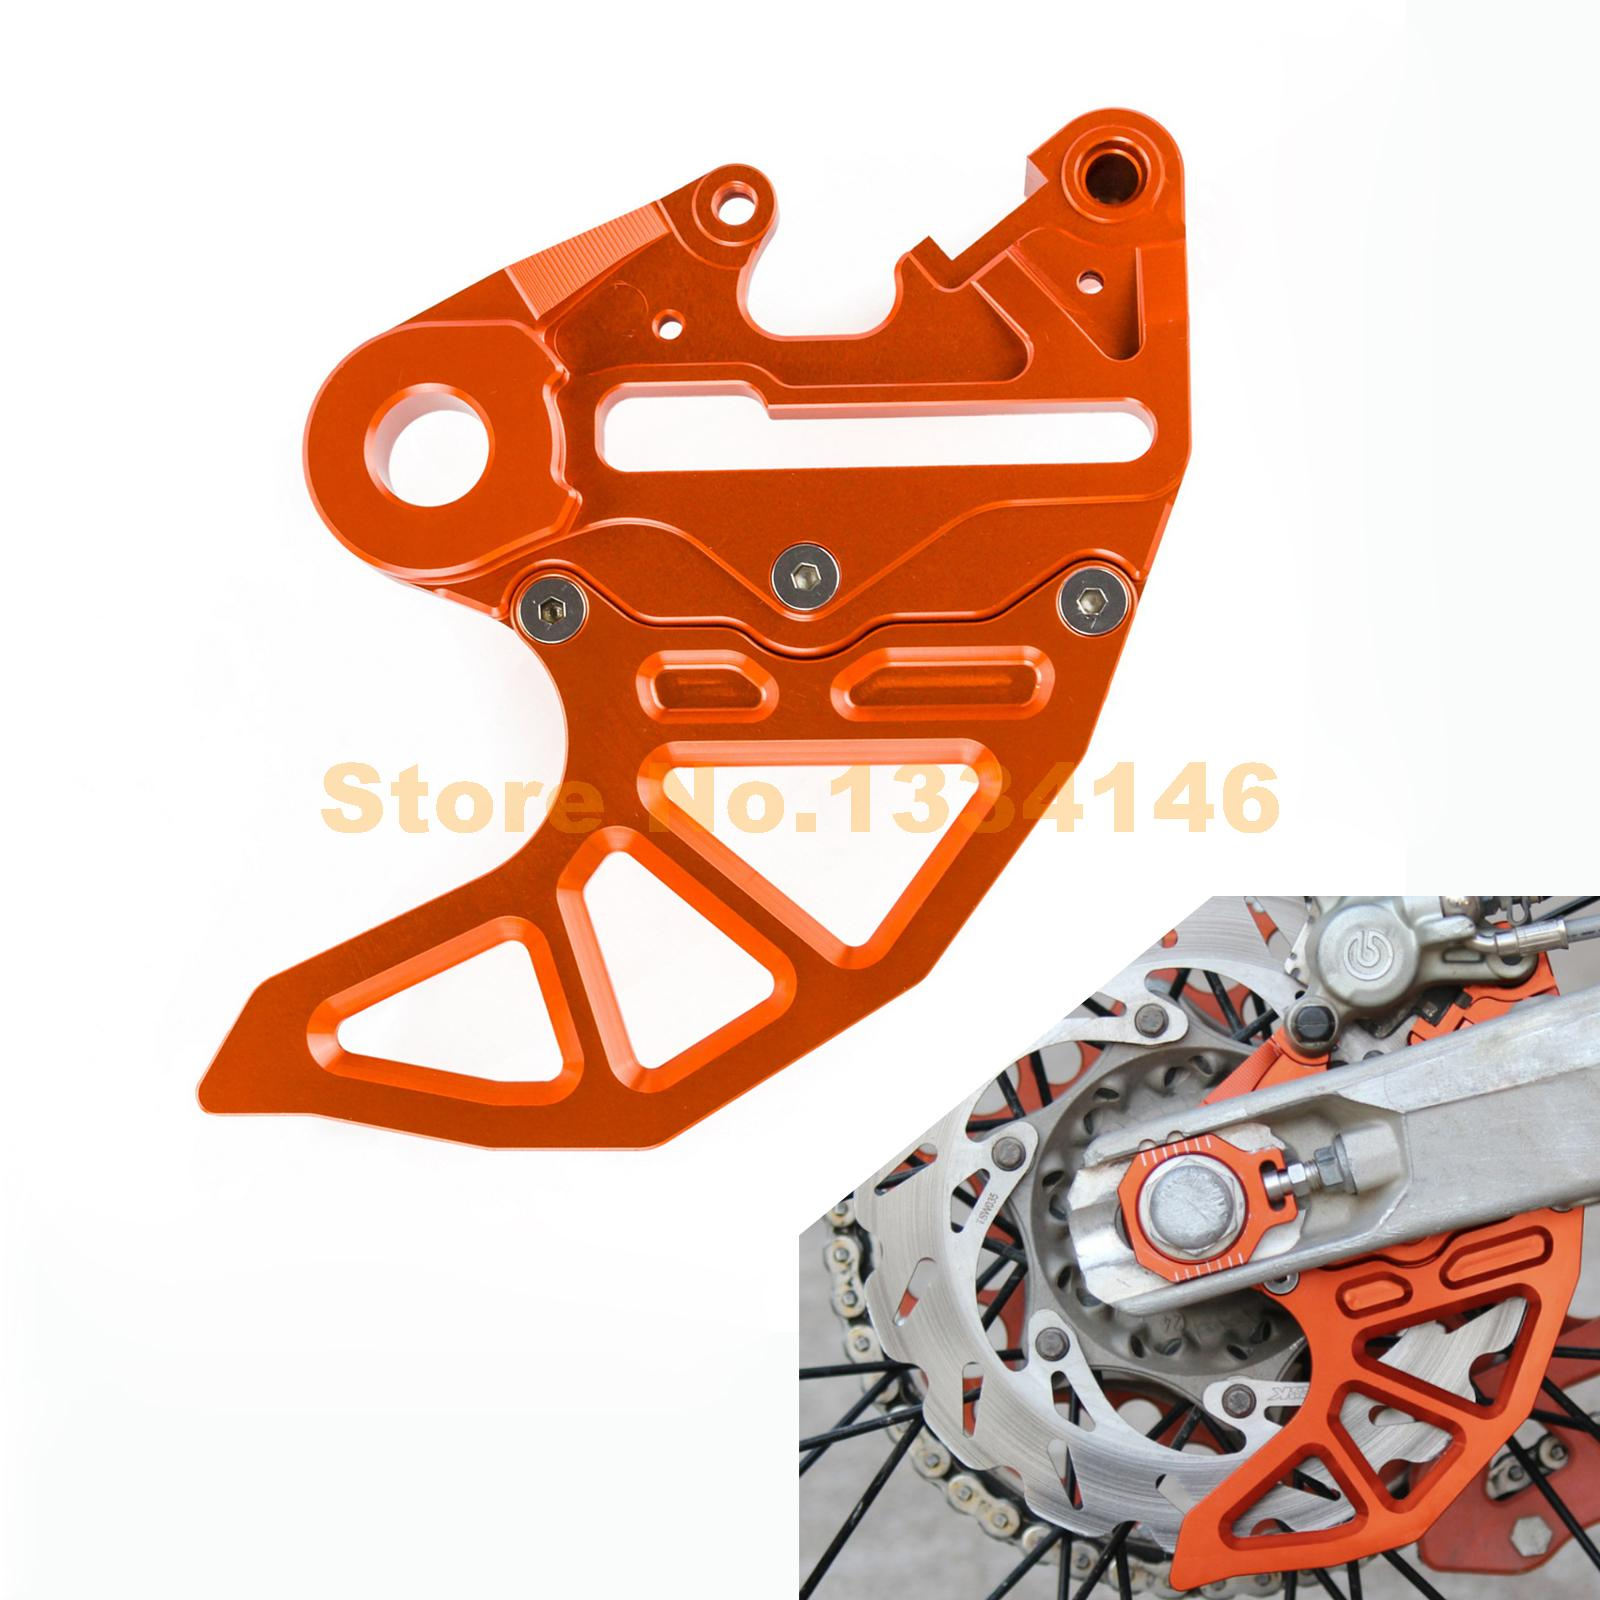 NICECNC Rear Brake Disc Rotor Guard With Caliper Support Bracket For KTM SX SX-F EXC EXC-F XC XC-F XCFW XC-W 125 250 350 450 525